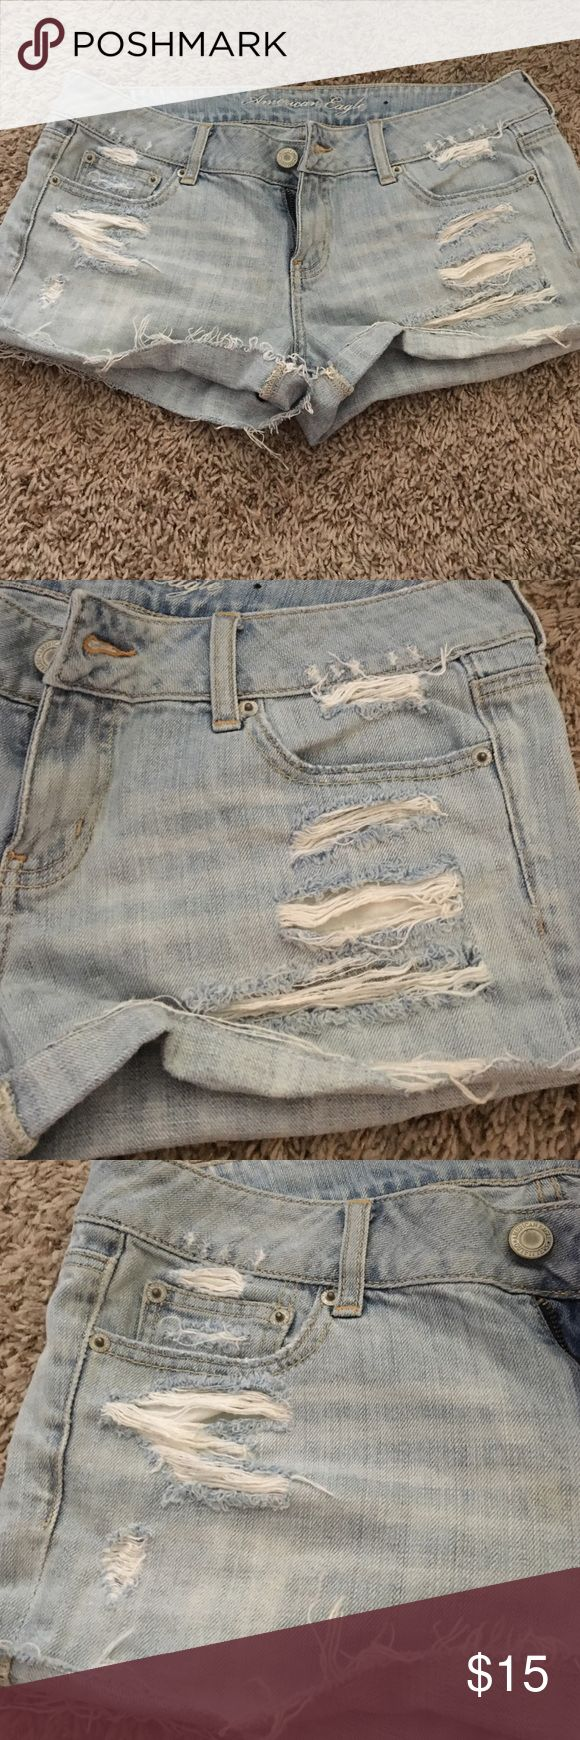 American Eagle destroyed shorts Great used condition! Light wash. Shorts came destroyed as shown. Cut off style. Smoke and pet free home American Eagle Outfitters Shorts Jean Shorts